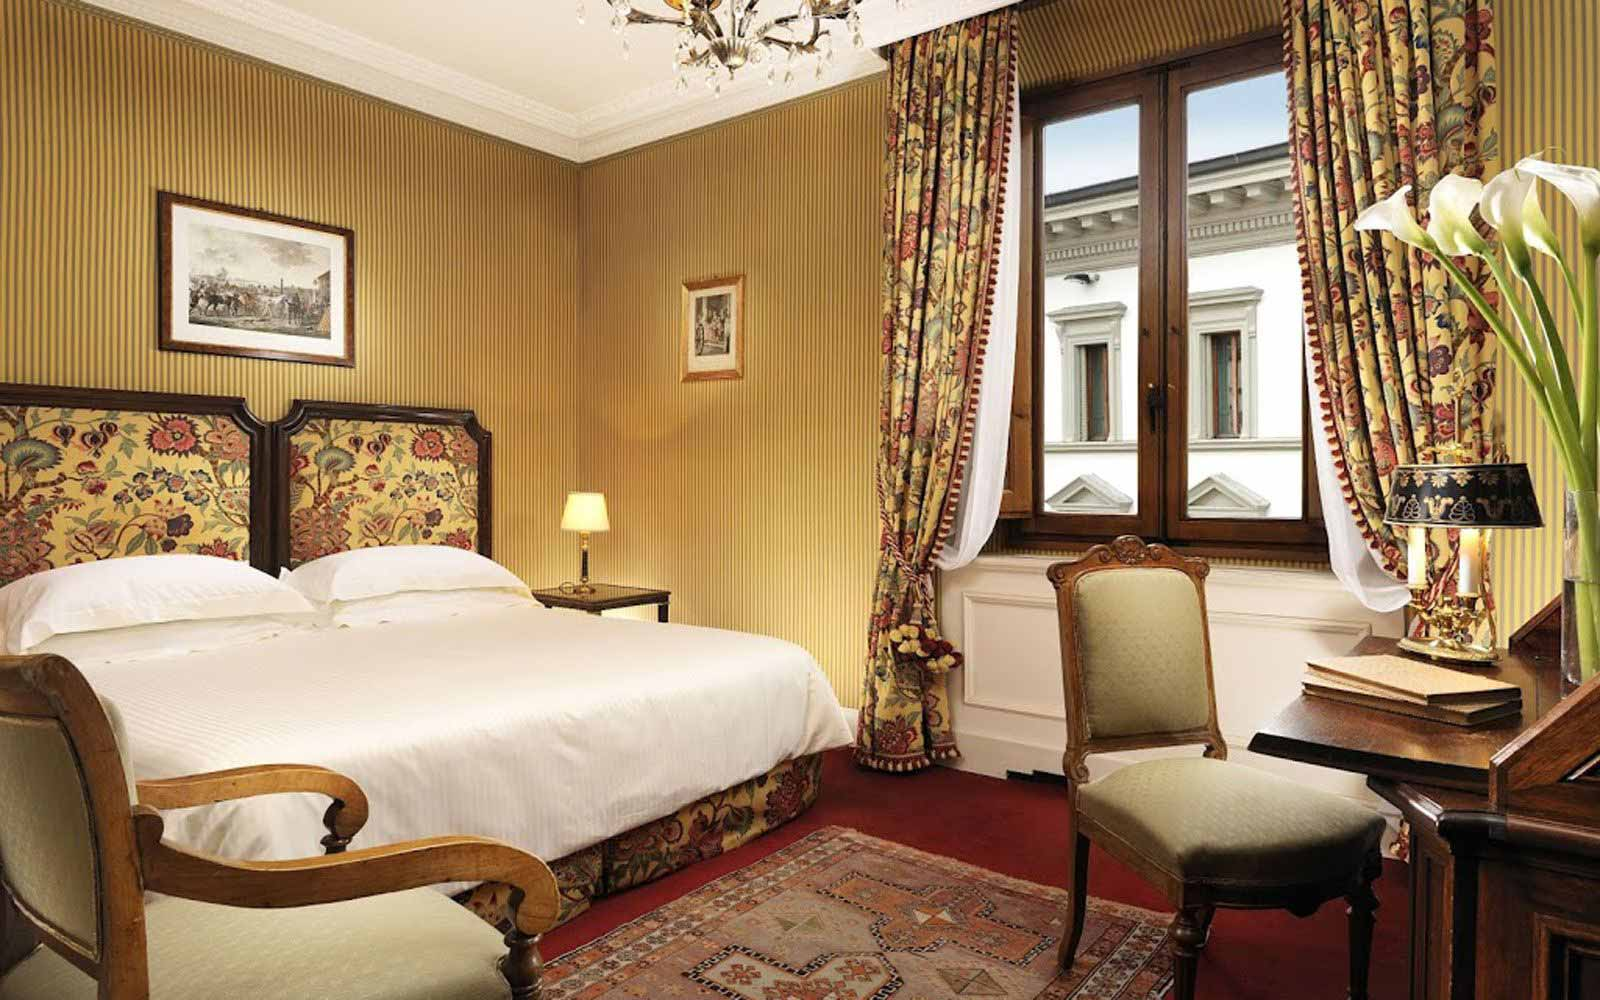 Executive double room at Hotel Helvetia & Bristol